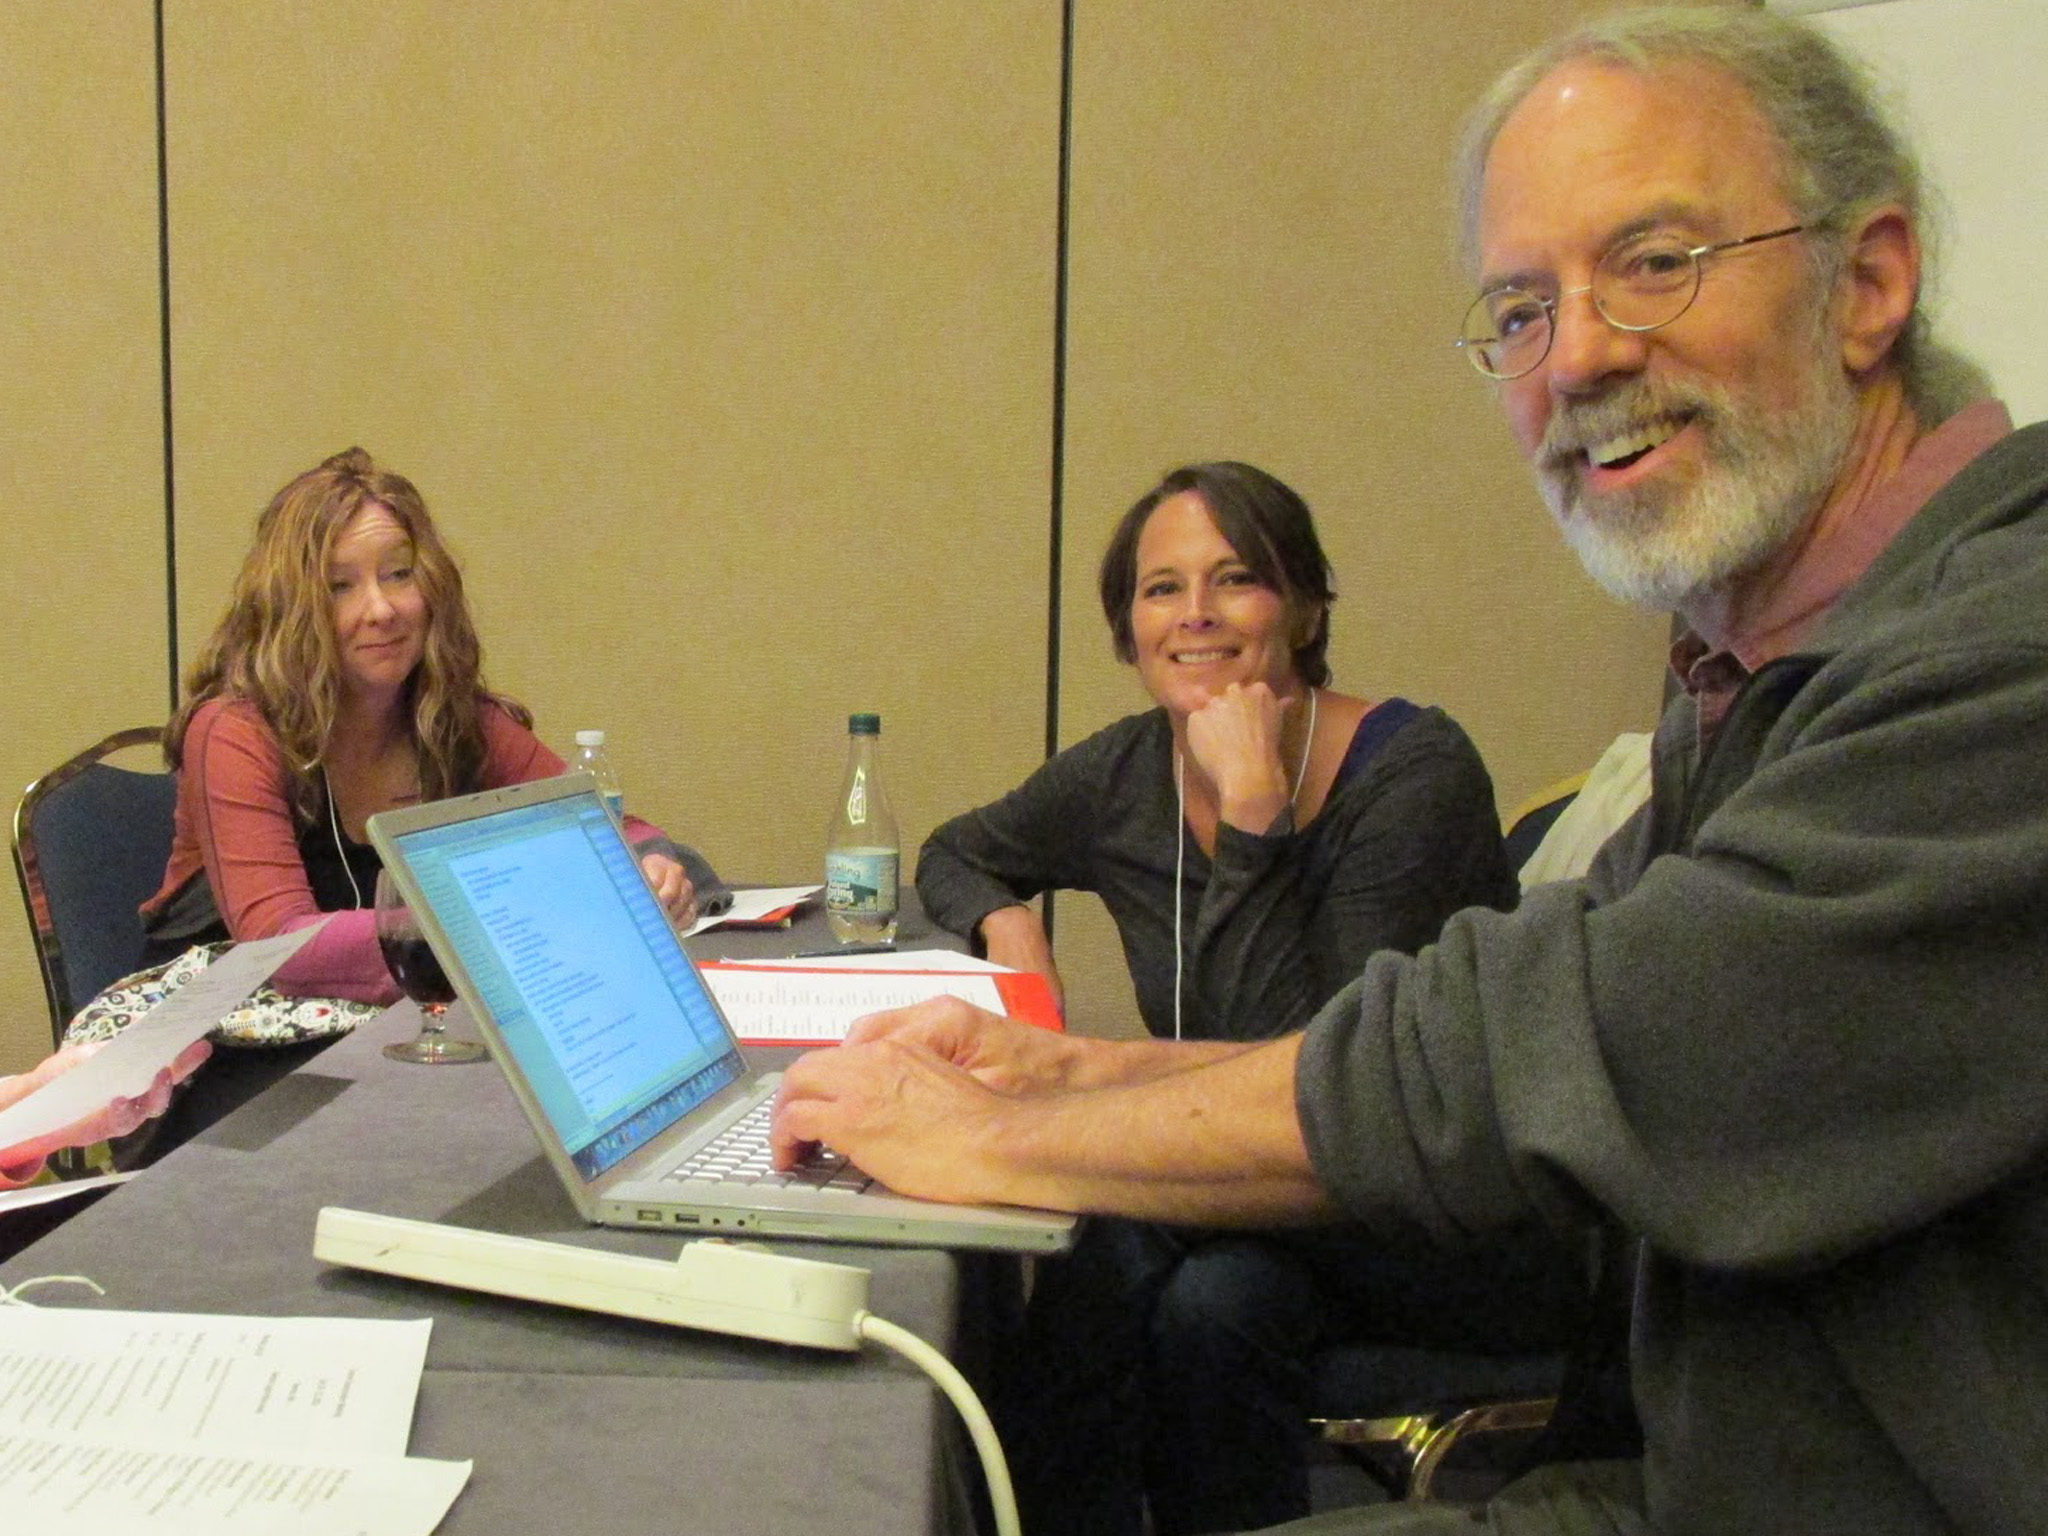 BioMath module co-author Gary Benson works with high school teachers